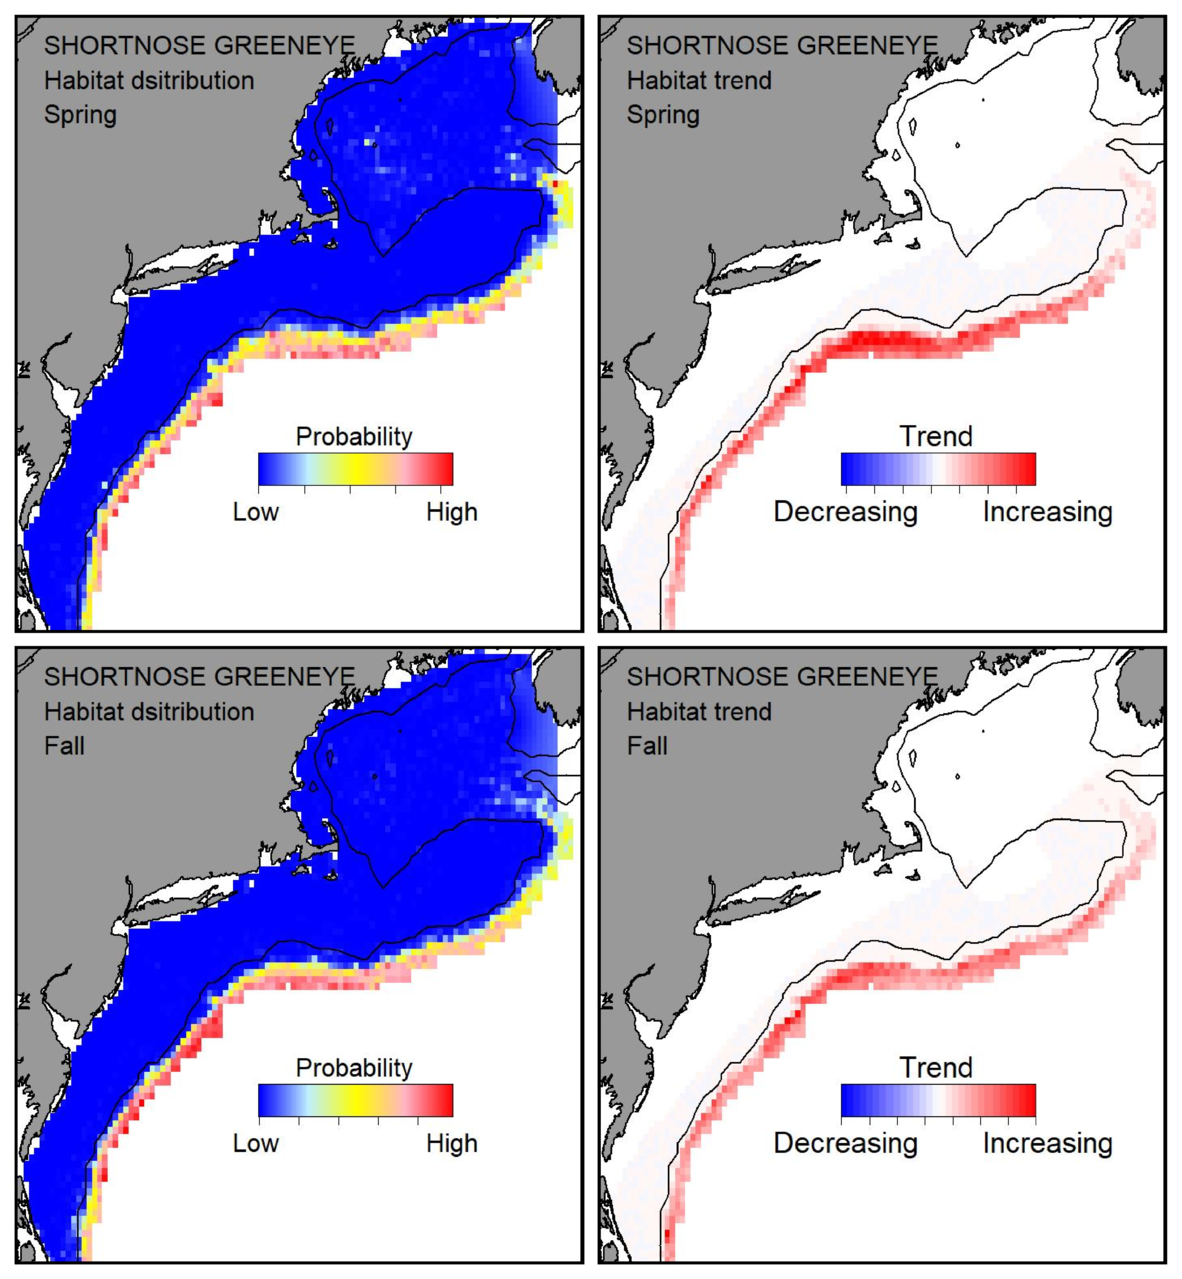 Probable habitat distribution for shortnose greeneye showing the highest concentration and increasing trend in the Gulf of Maine during the spring. Bottom row: Probable habitat distribution for shortnose greeneye showing the highest concentration and increasing trend in the Gulf of Maine during the fall.